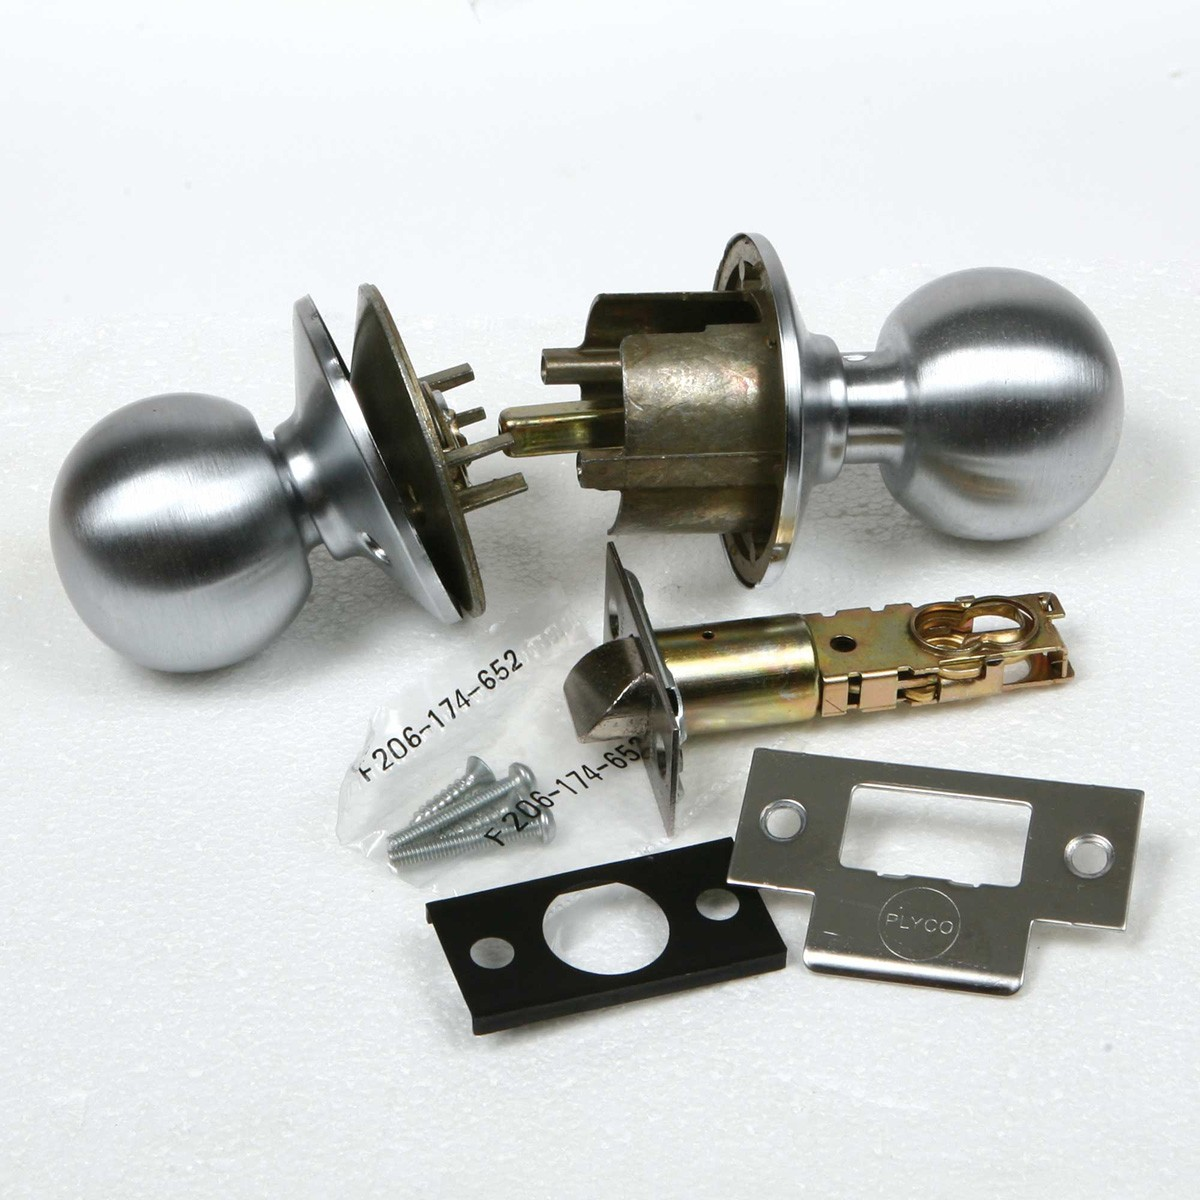 door knob components photo - 2